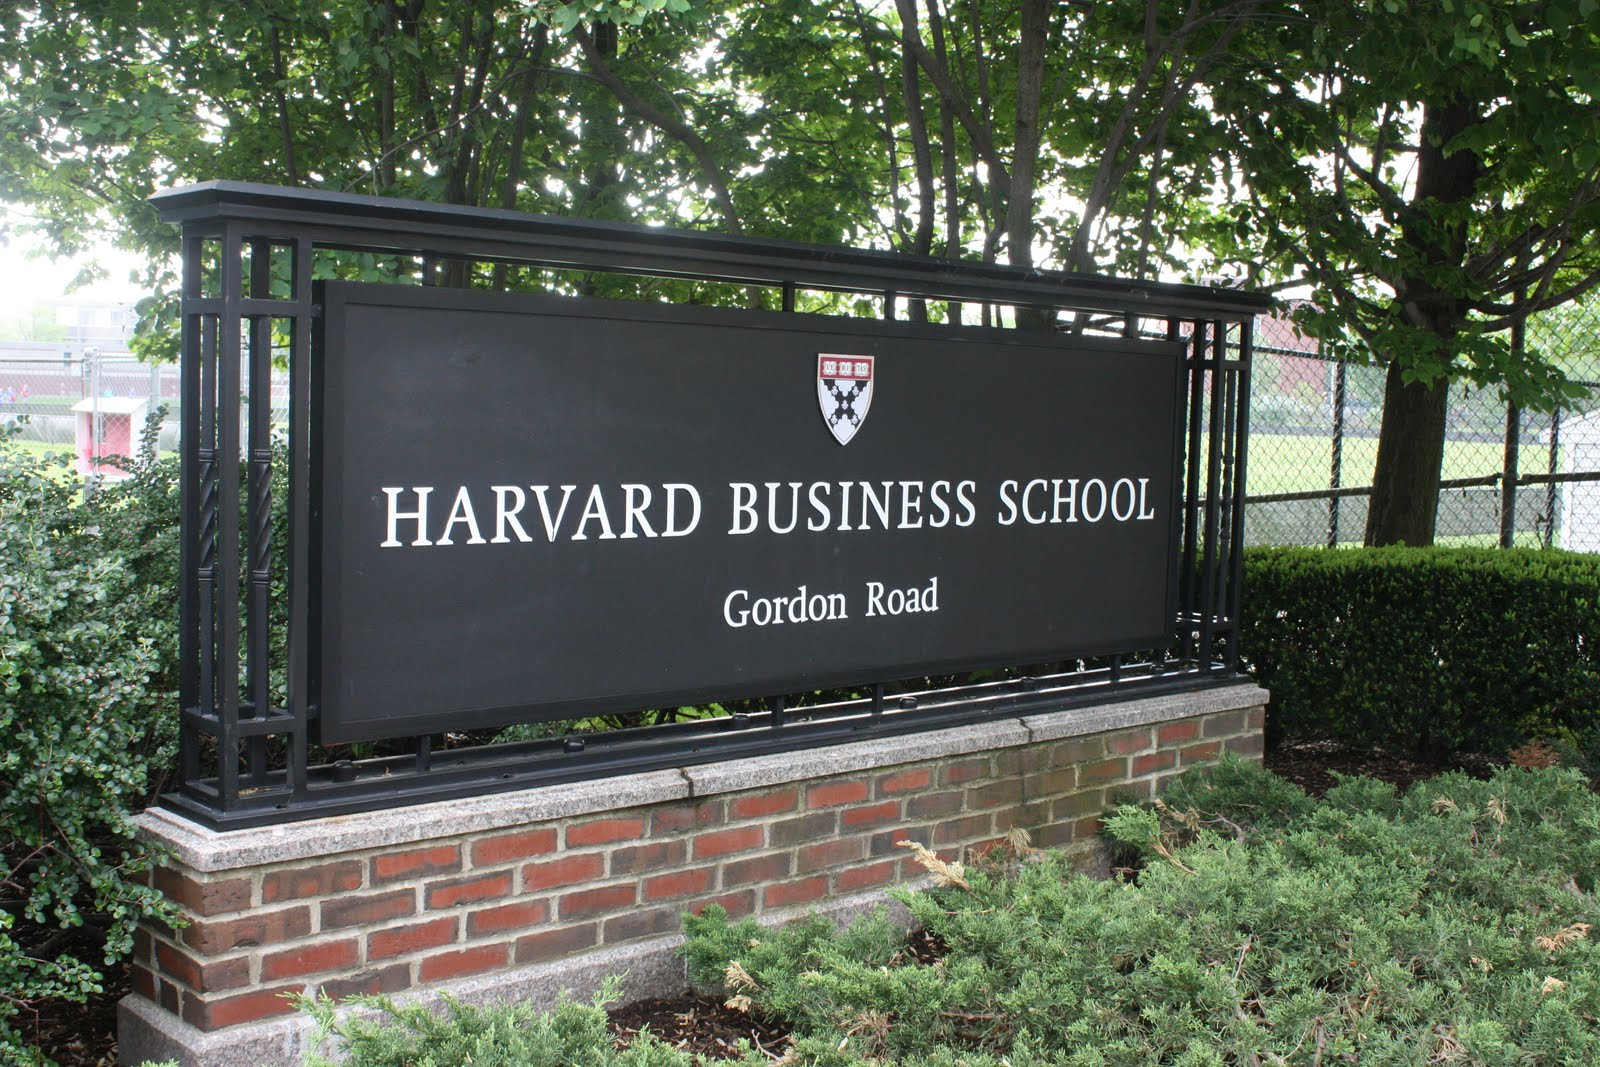 HBS- Harvard Business School Application